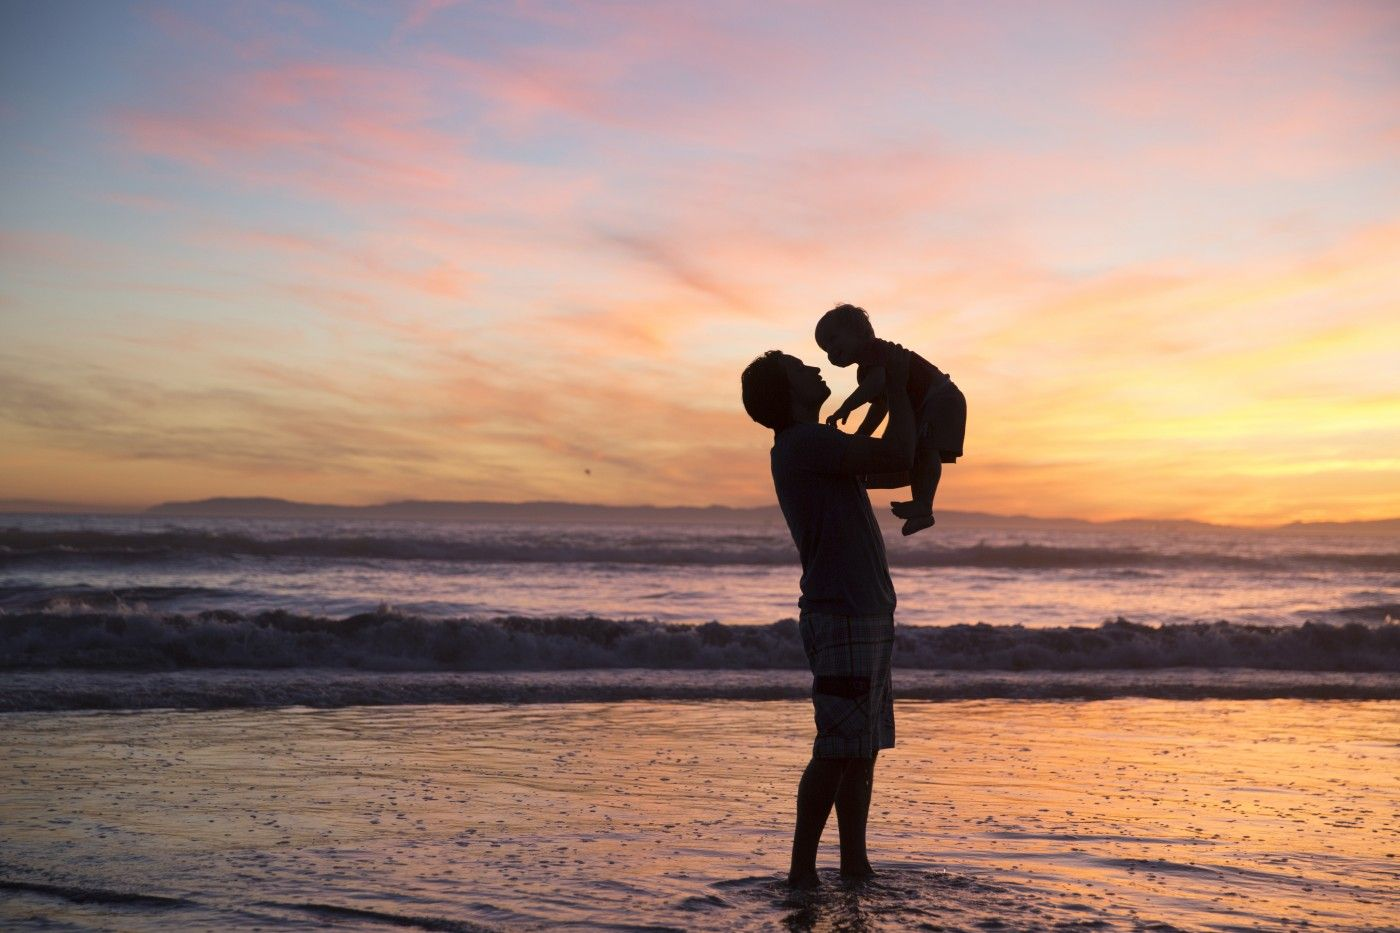 father holding a child up while the sun is setting while standing in the ocean beach